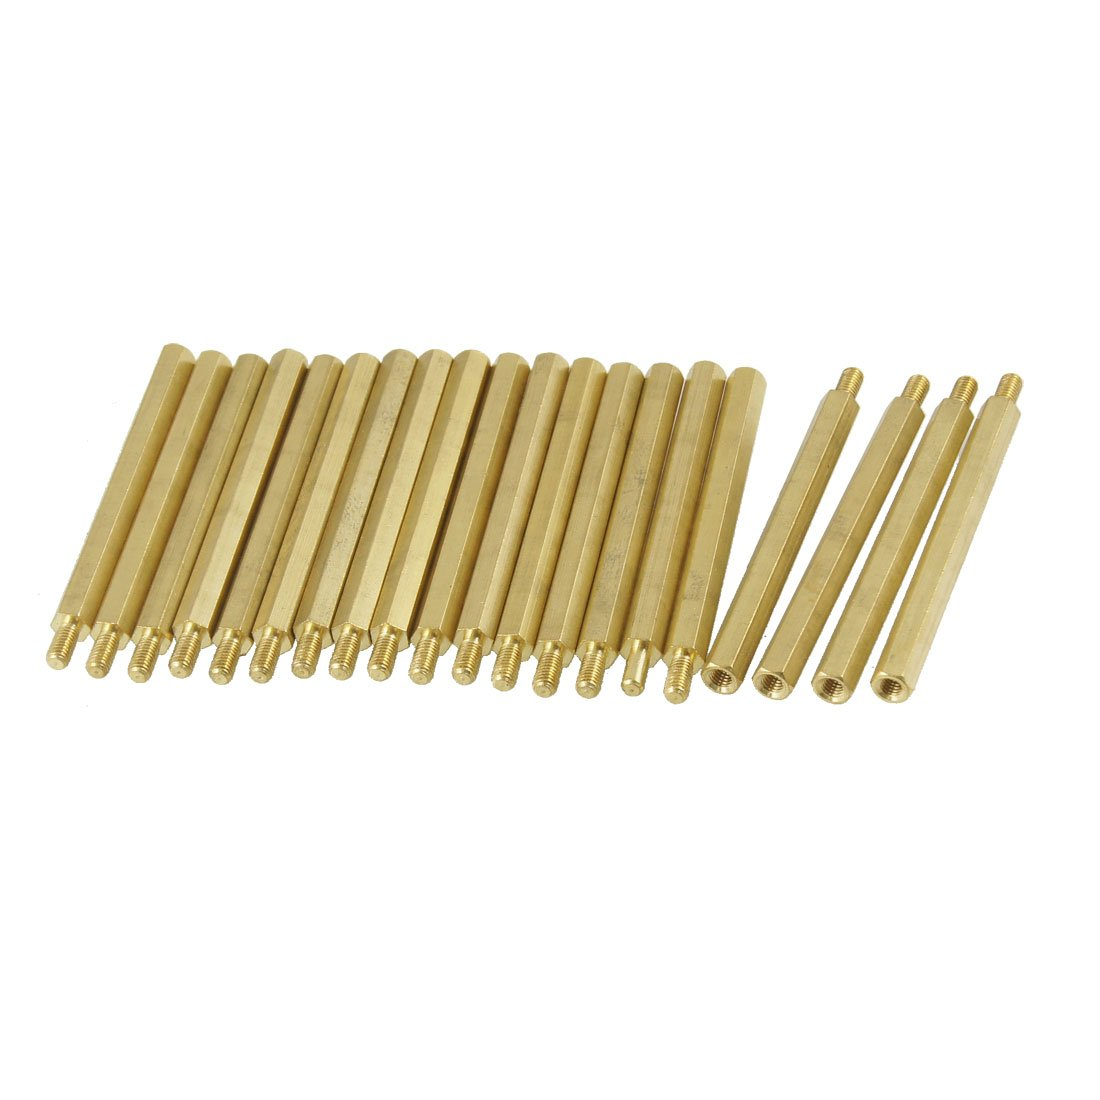 MOCC 20 Pcs M3 Male x M3 Female Hexagonal Thread PCB Standoff Spacer 50mm Body Length m4 male m 25 30 35 40 45 50 55 60 mm x m4 6mm female brass standoff spacer copper hexagonal stud spacer hollow pillars